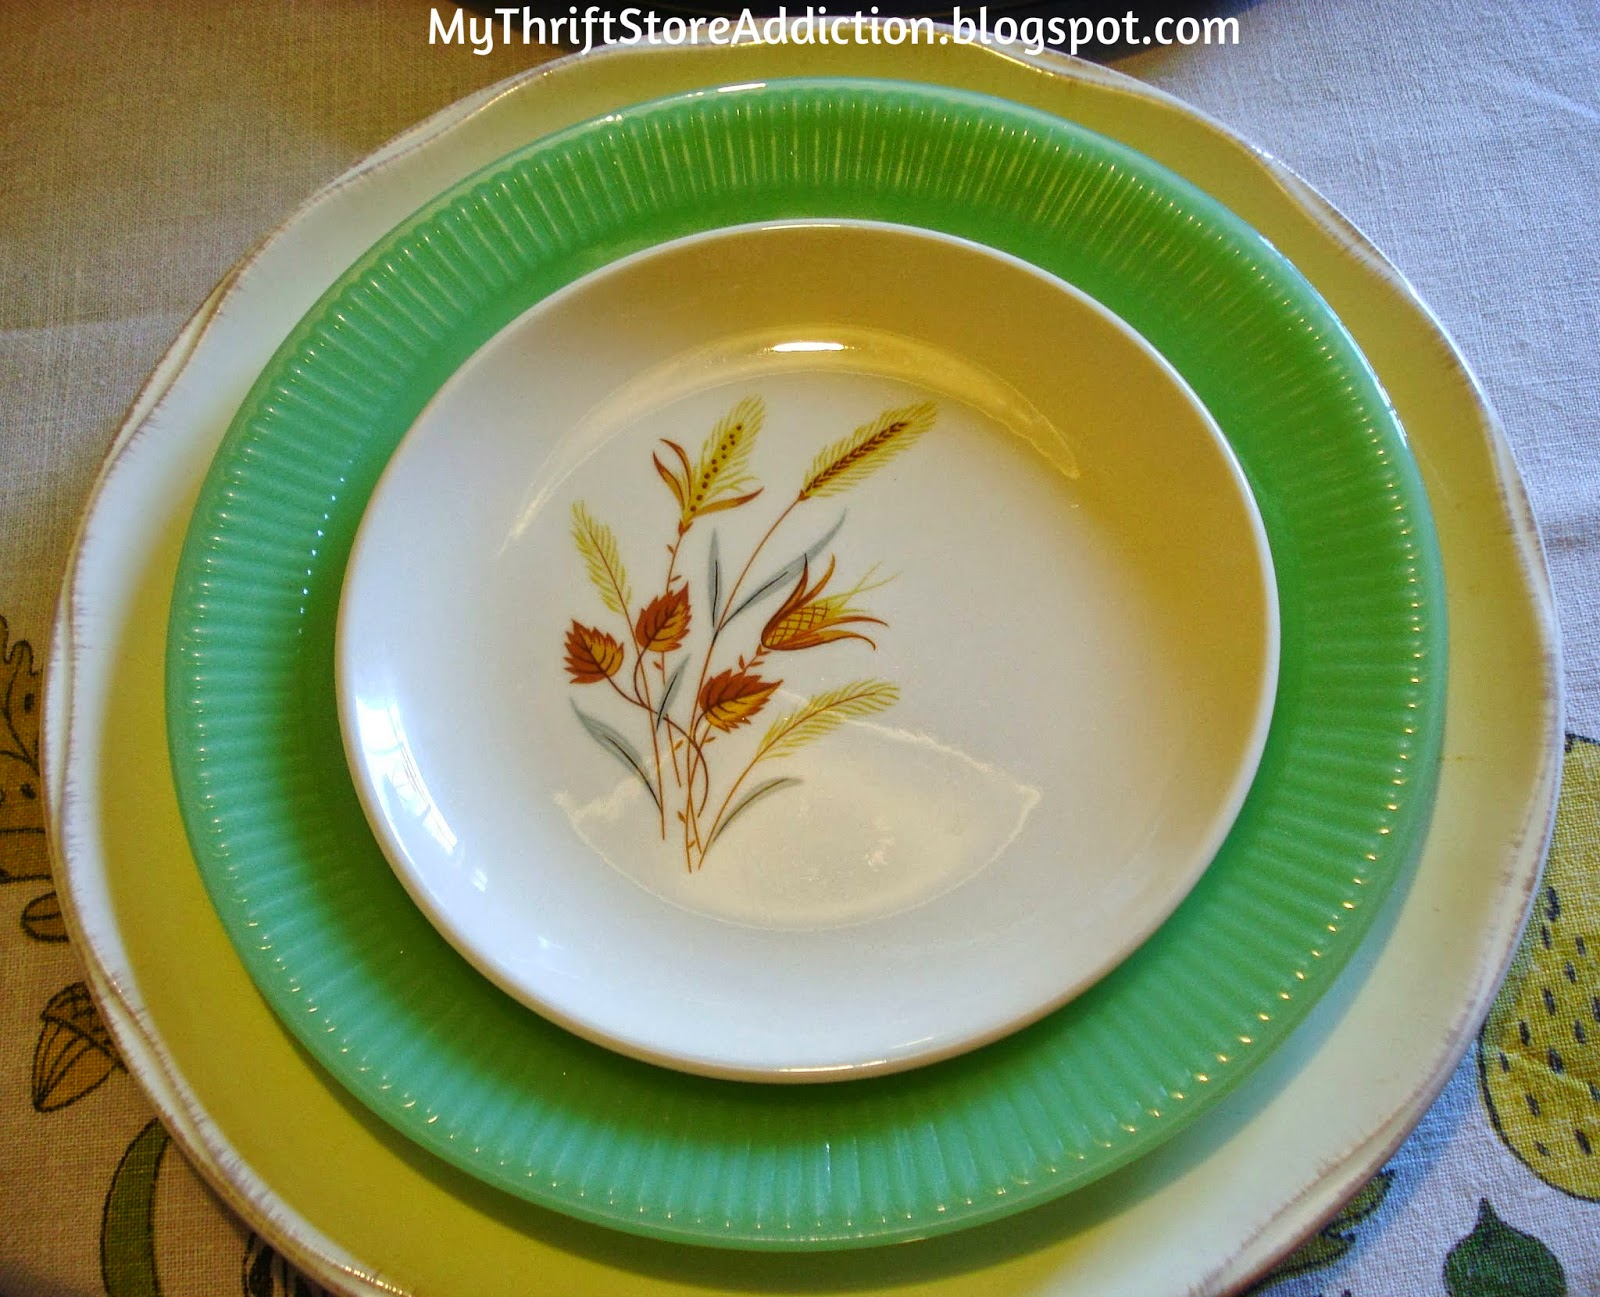 Vintage Ever Yours Autumn Harvest plates